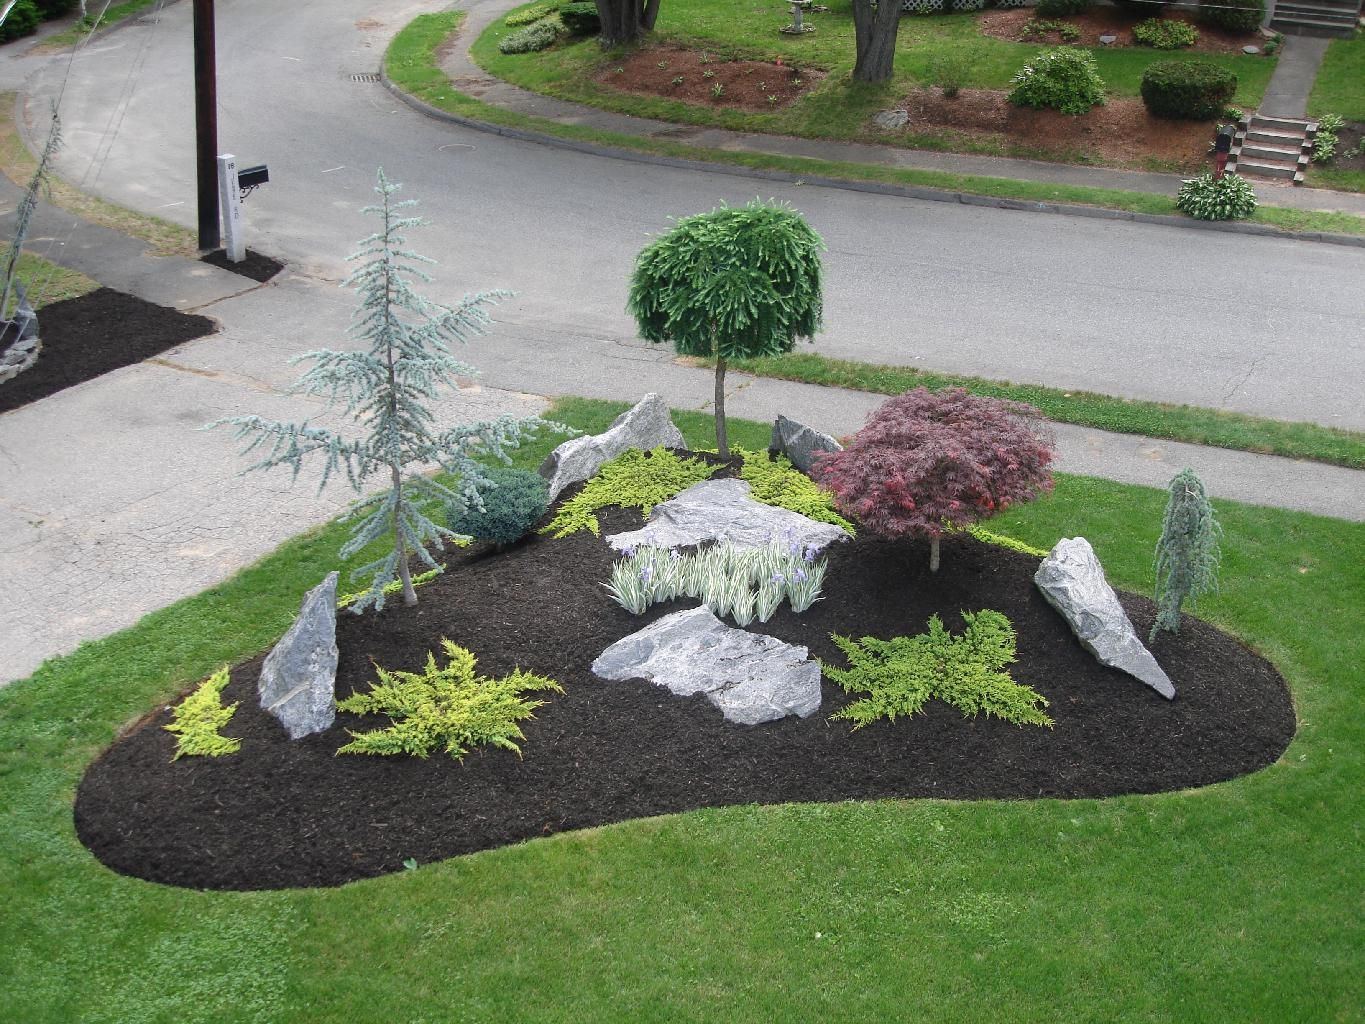 Simple landscape designs with rock beds google search for Basic small garden design